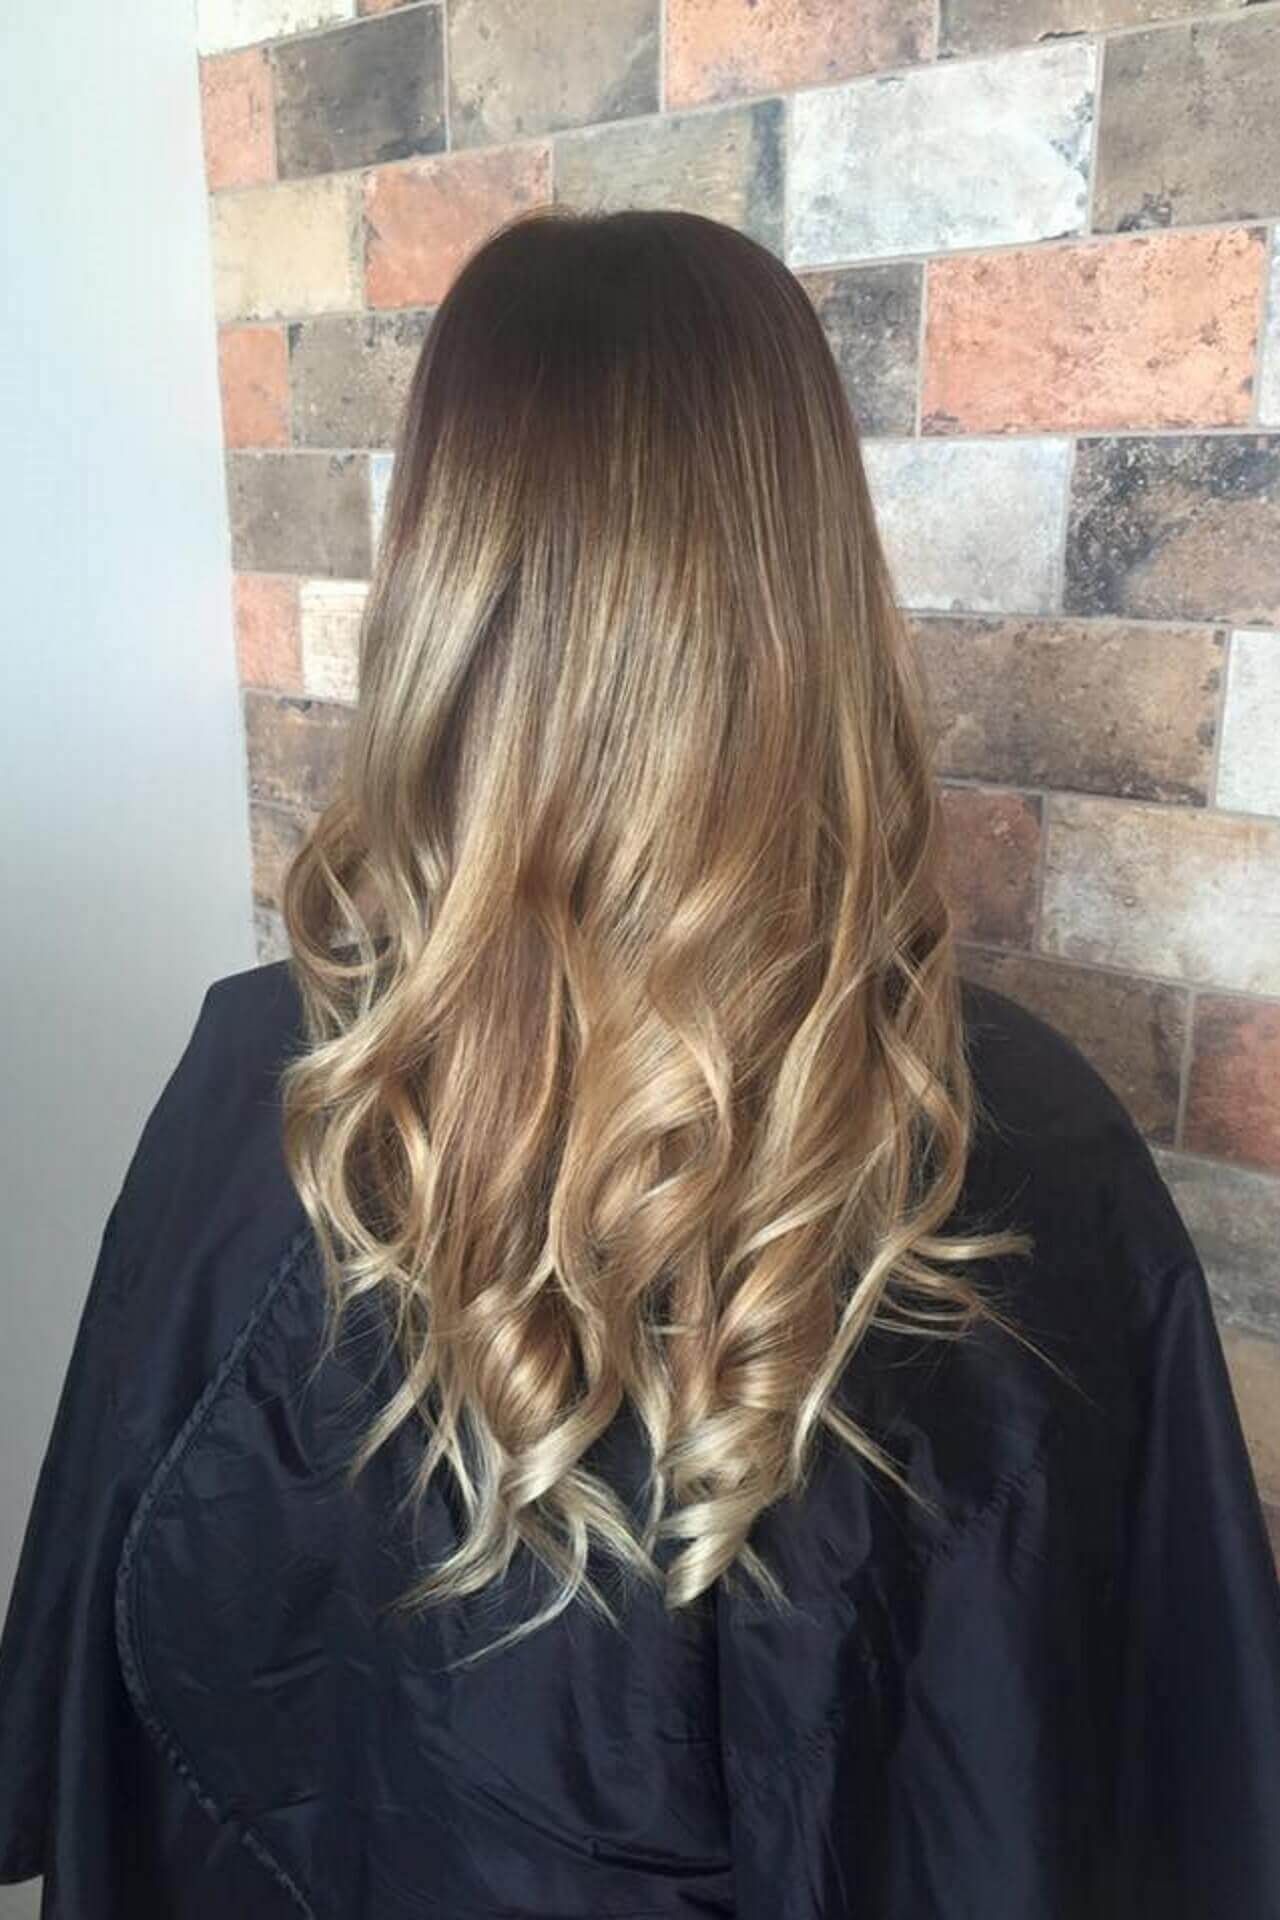 Samantha Jones Hair Co Our Work Image Gallery - Long Natural Wave Hair Hairdo Wavy Curly Ends